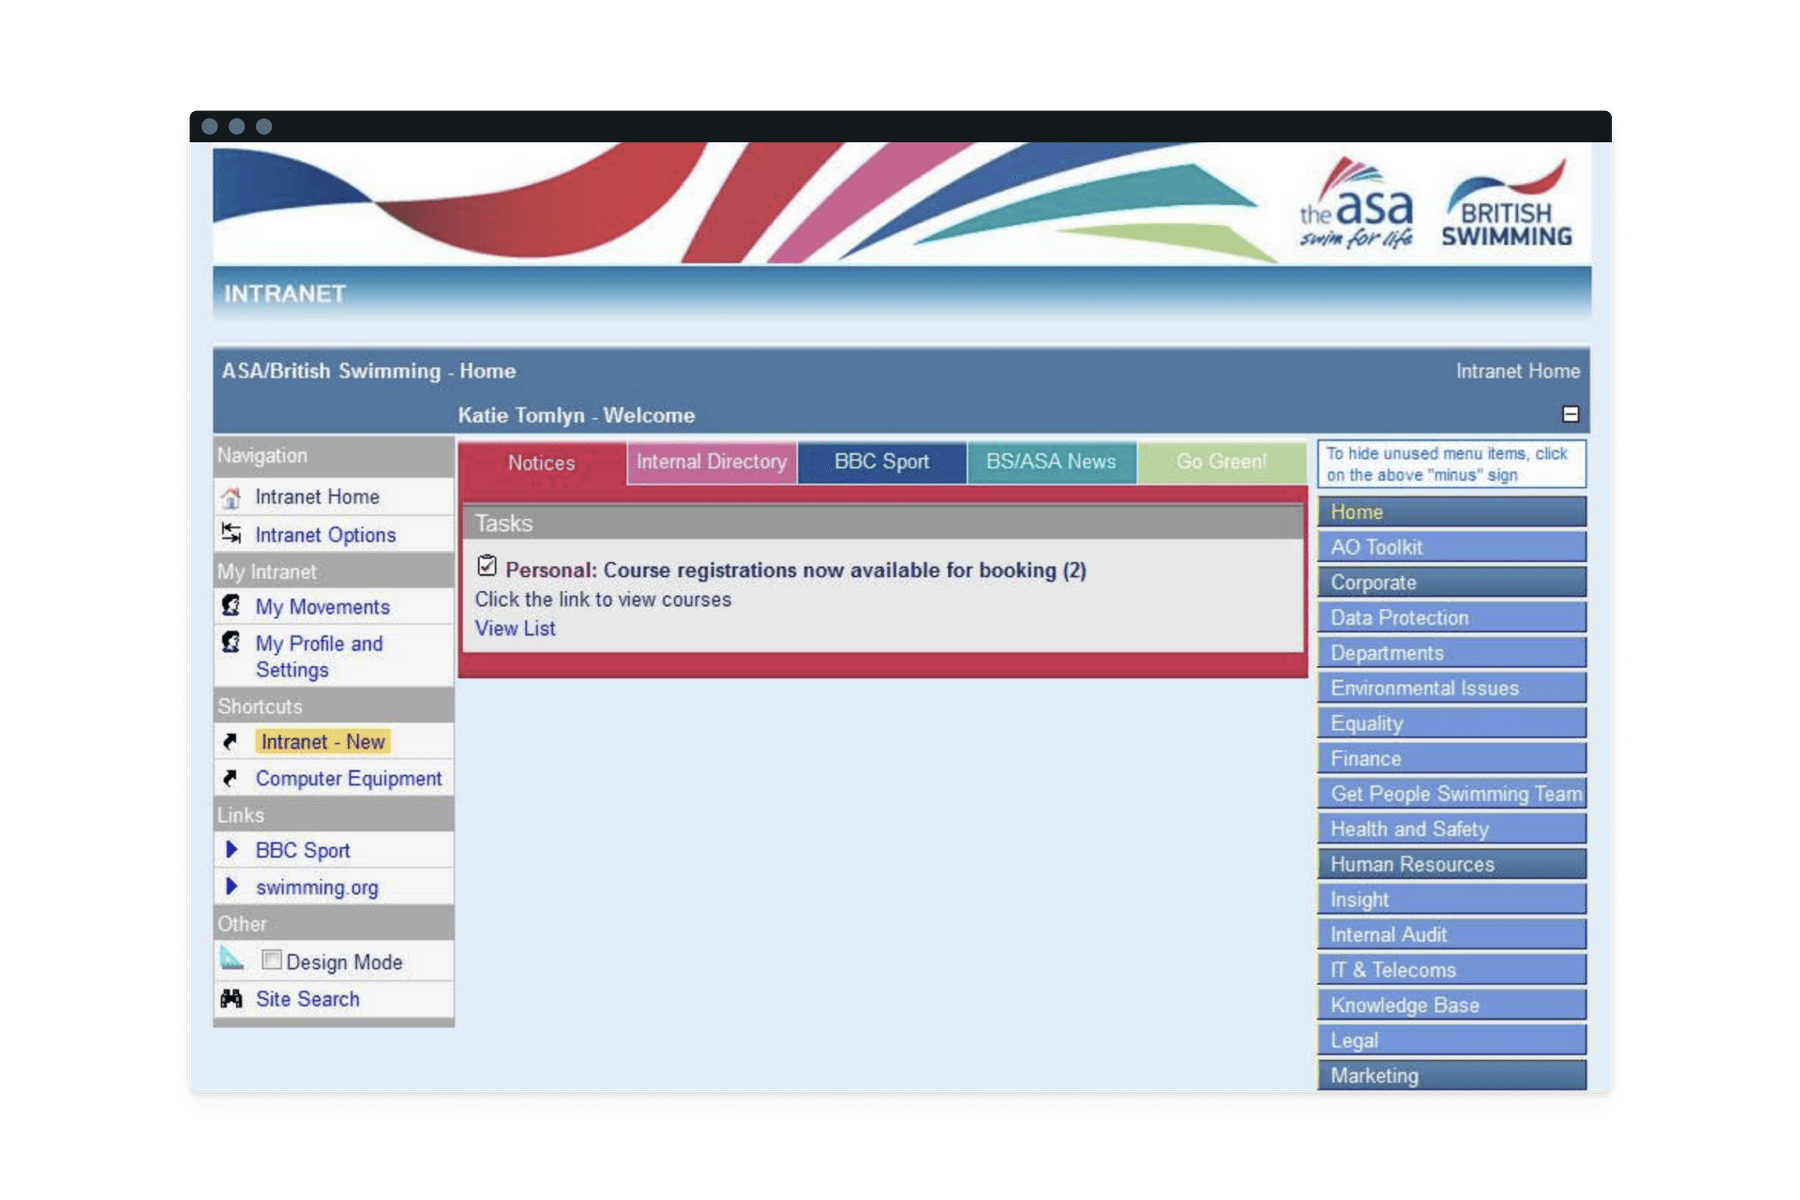 The old ASA and British Swimming Intranet